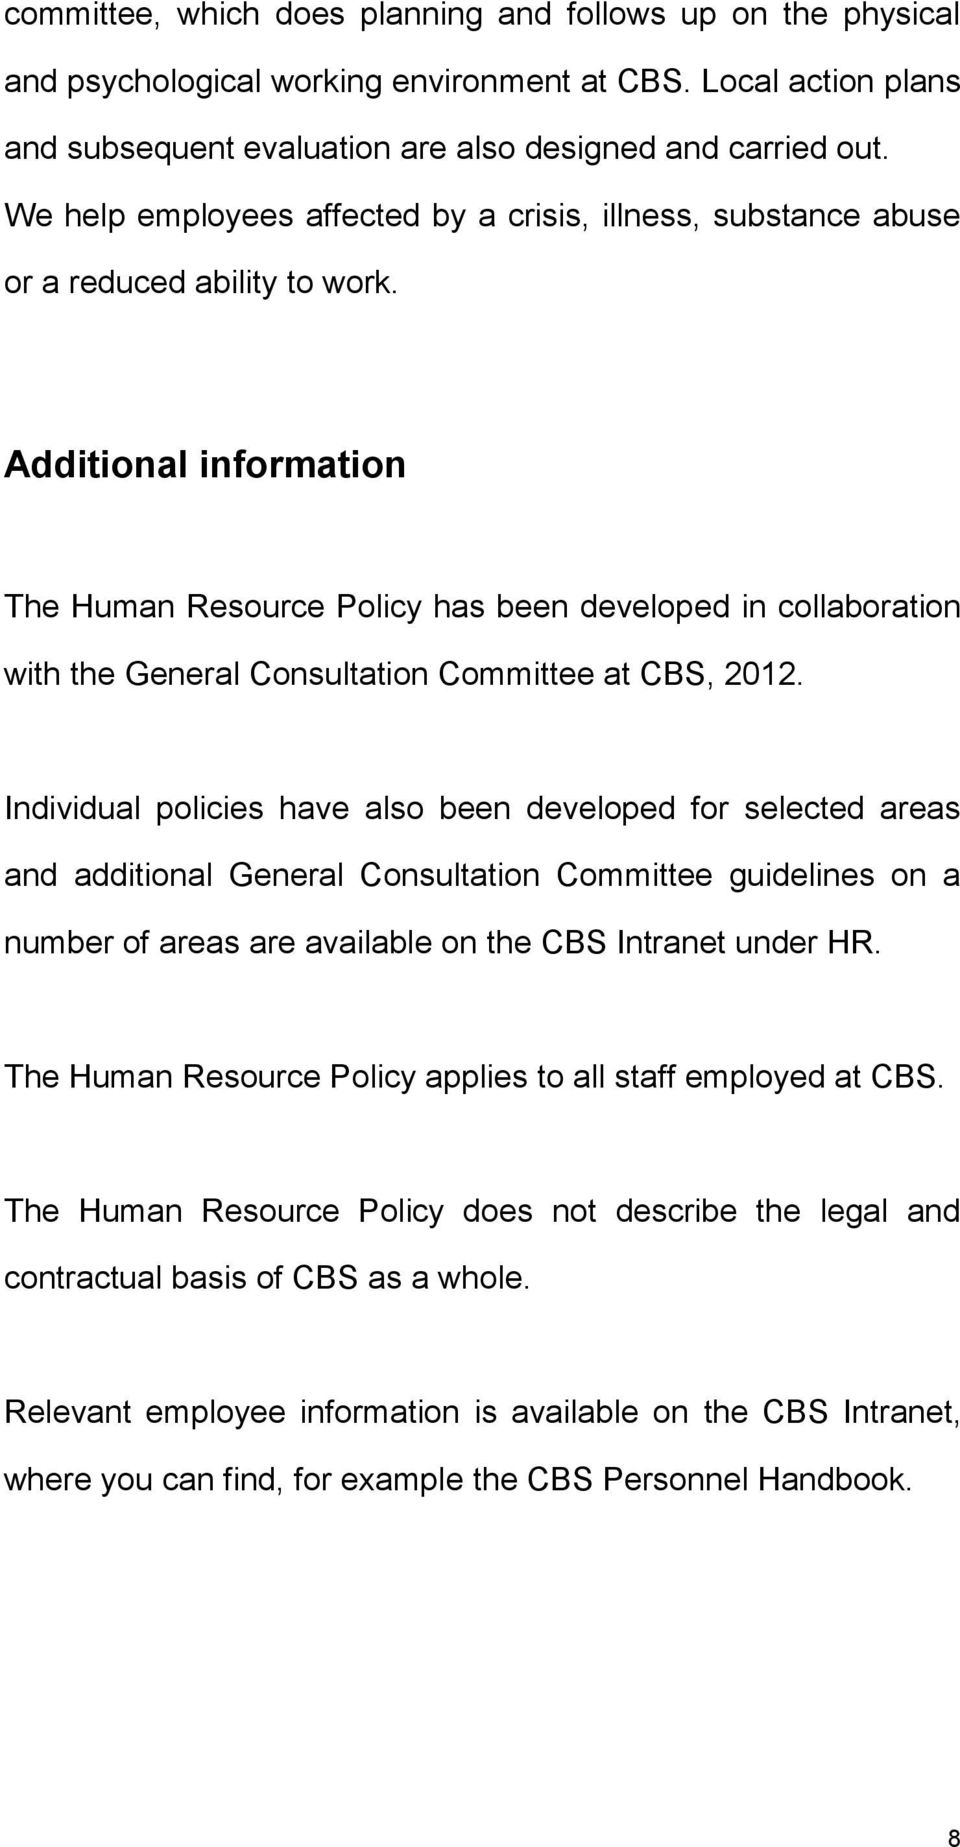 Additional information The Human Resource Policy has been developed in collaboration with the General Consultation Committee at CBS, 2012.